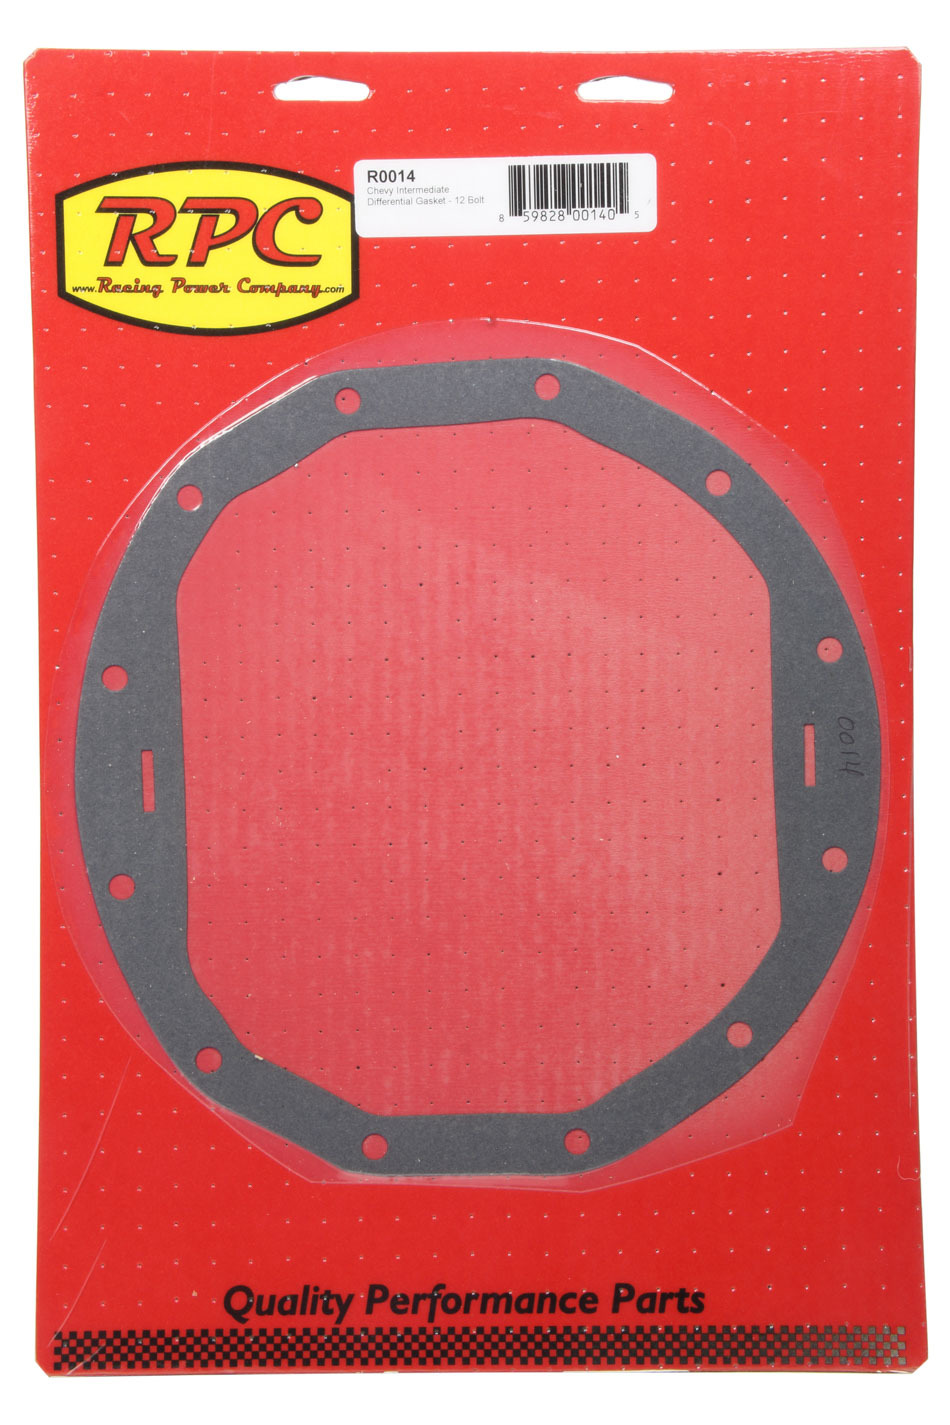 Racing Power Co-packaged Chevy Intermediate Diff Cover Gasket 12 Bolt